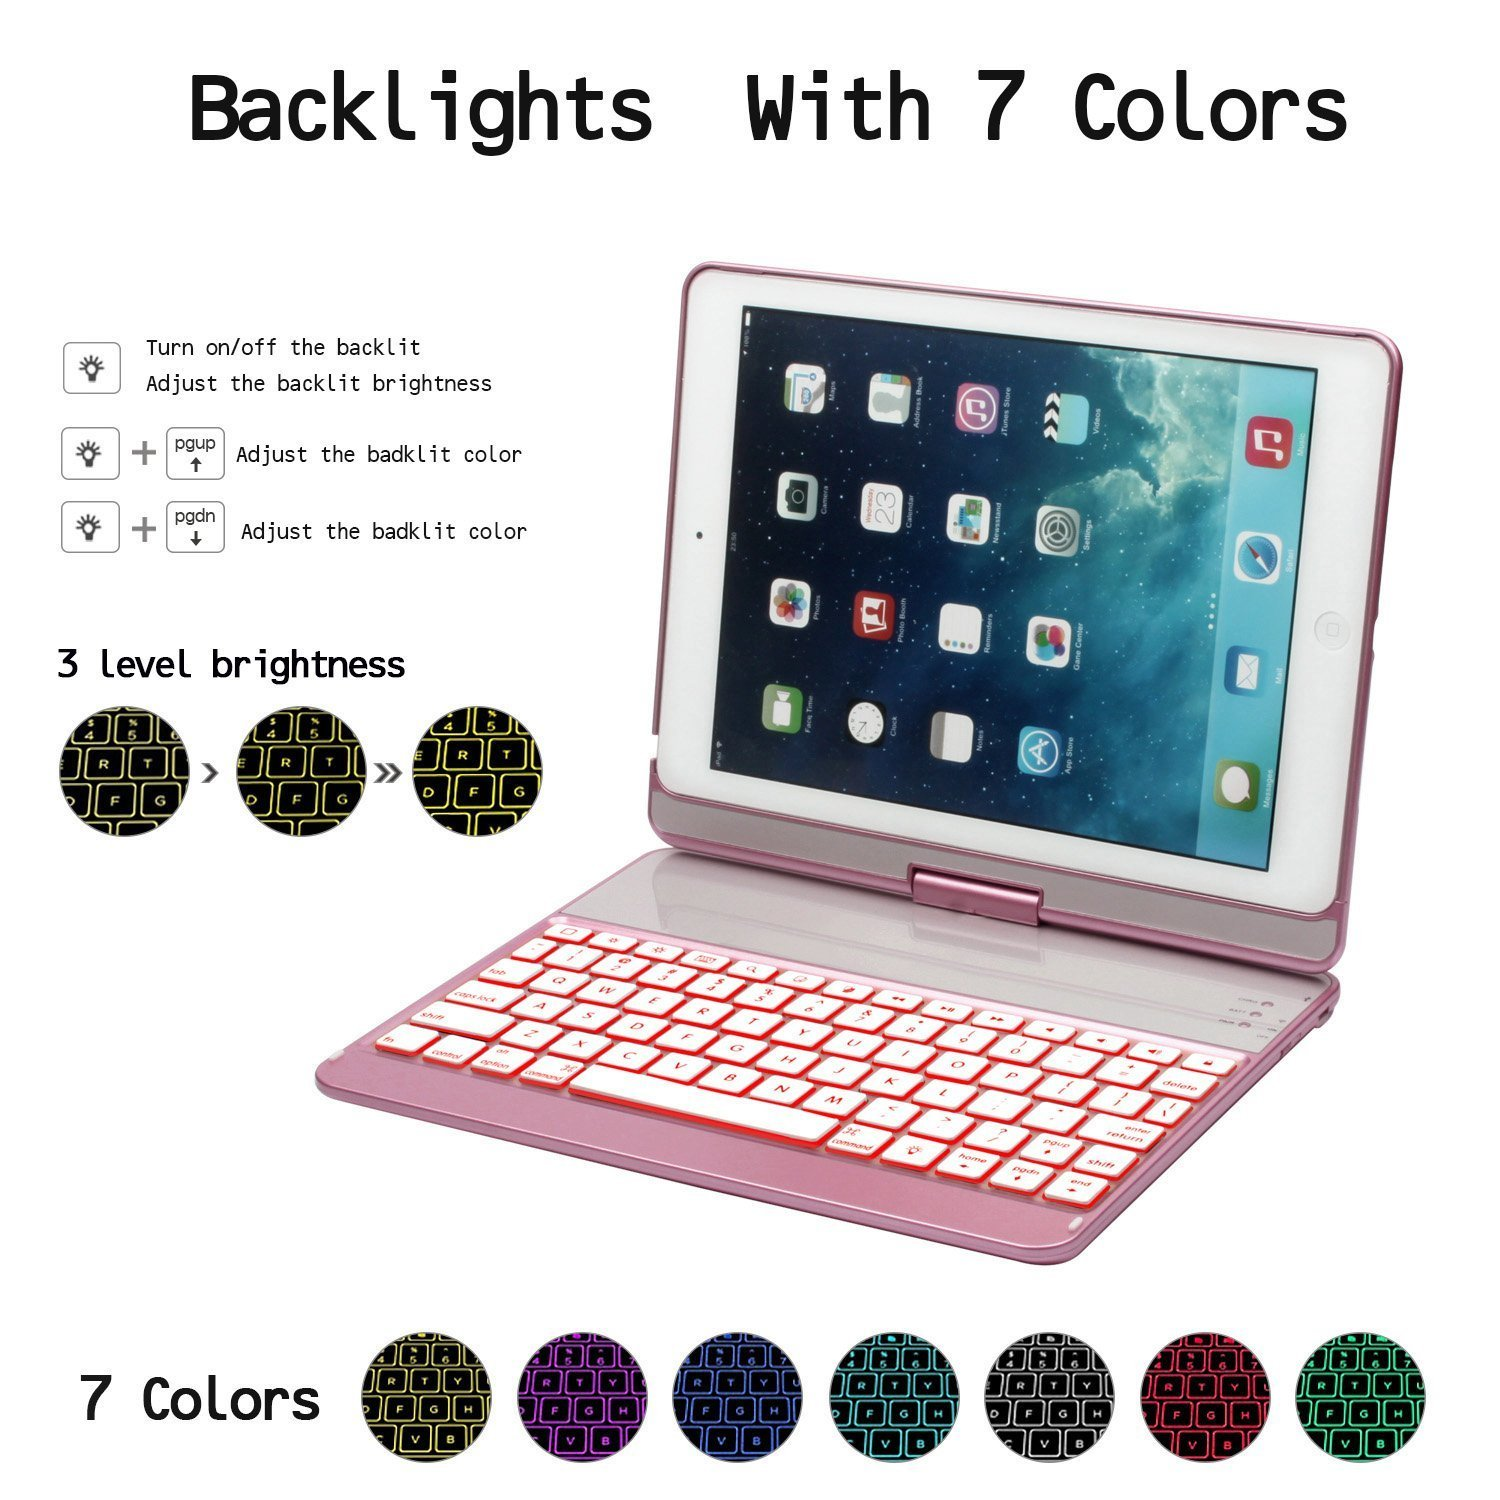 Sammid Bluetooth Keyboard Case for 2018 New iPad 9.7, 360 Degree Rotation with Multiple Angle Viewing Keyboard Case Smart Auto Sleep-Wake Cover for 9.7 inch 2017/2018 New iPad - Rose Gold by Sammid (Image #5)